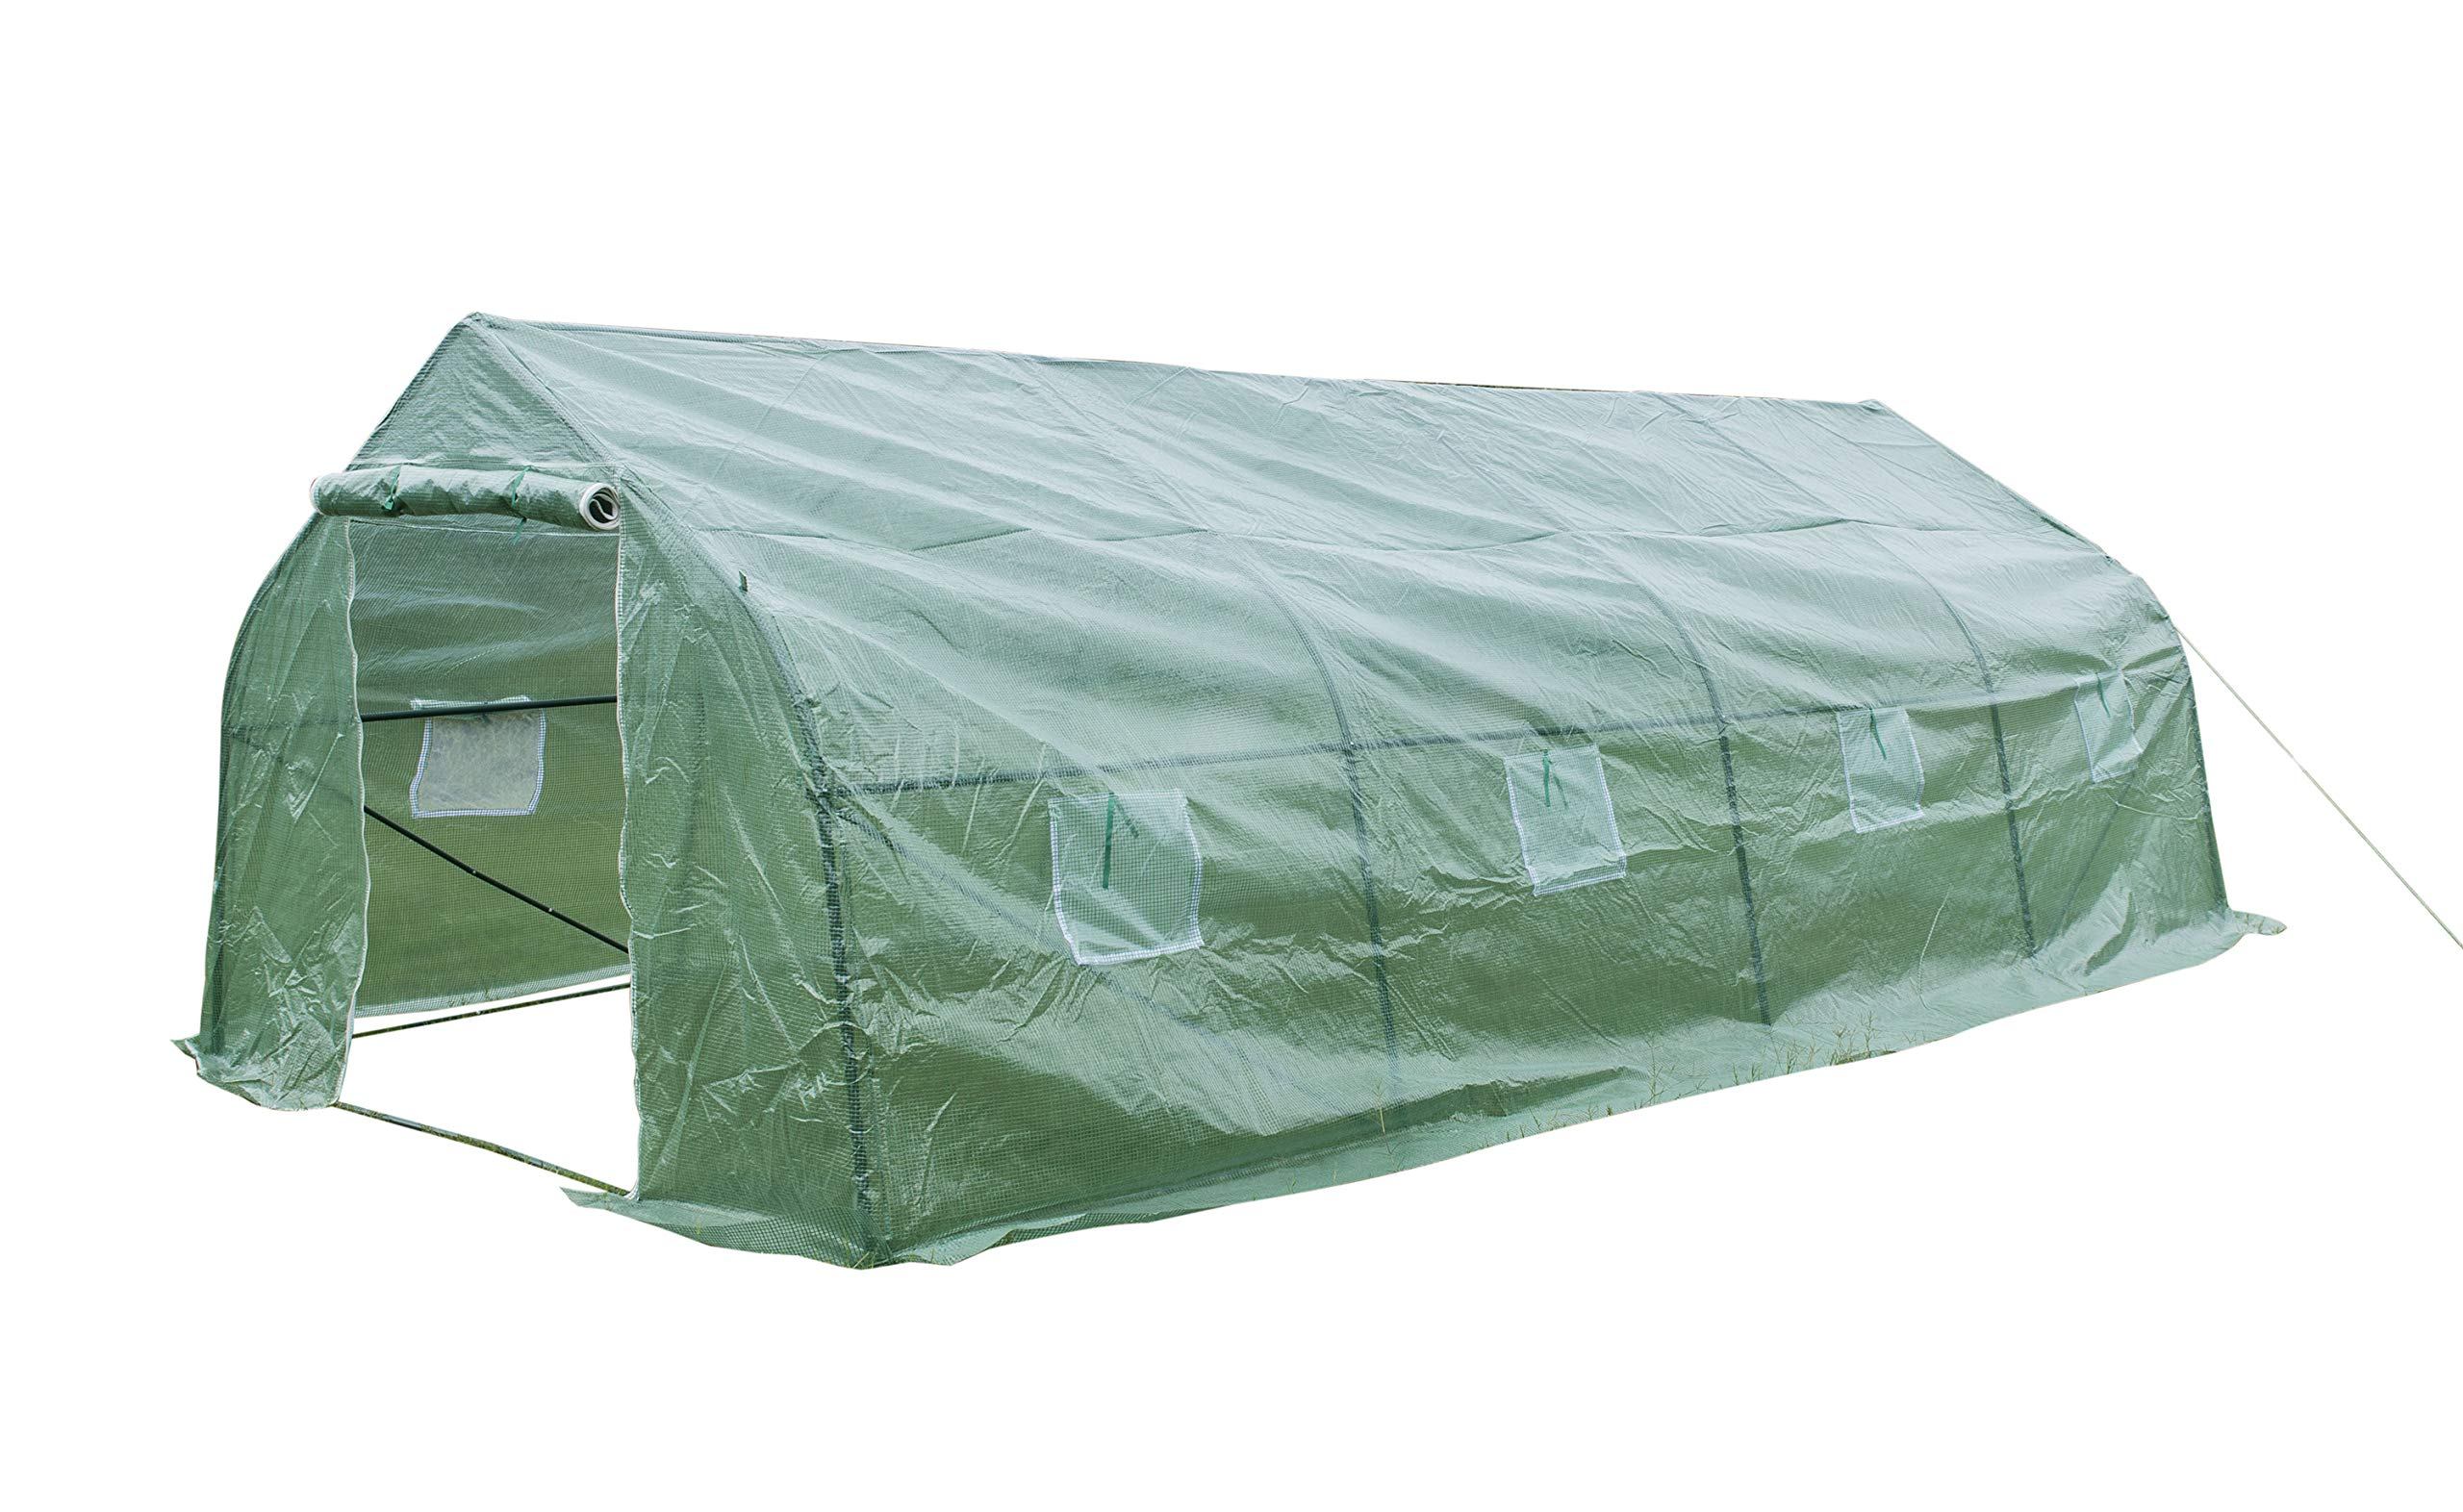 GOJOOASIS Walk-in Greenhouse 20'x10'x7' Outdoor Large Portable Green Garden House Plant Shed